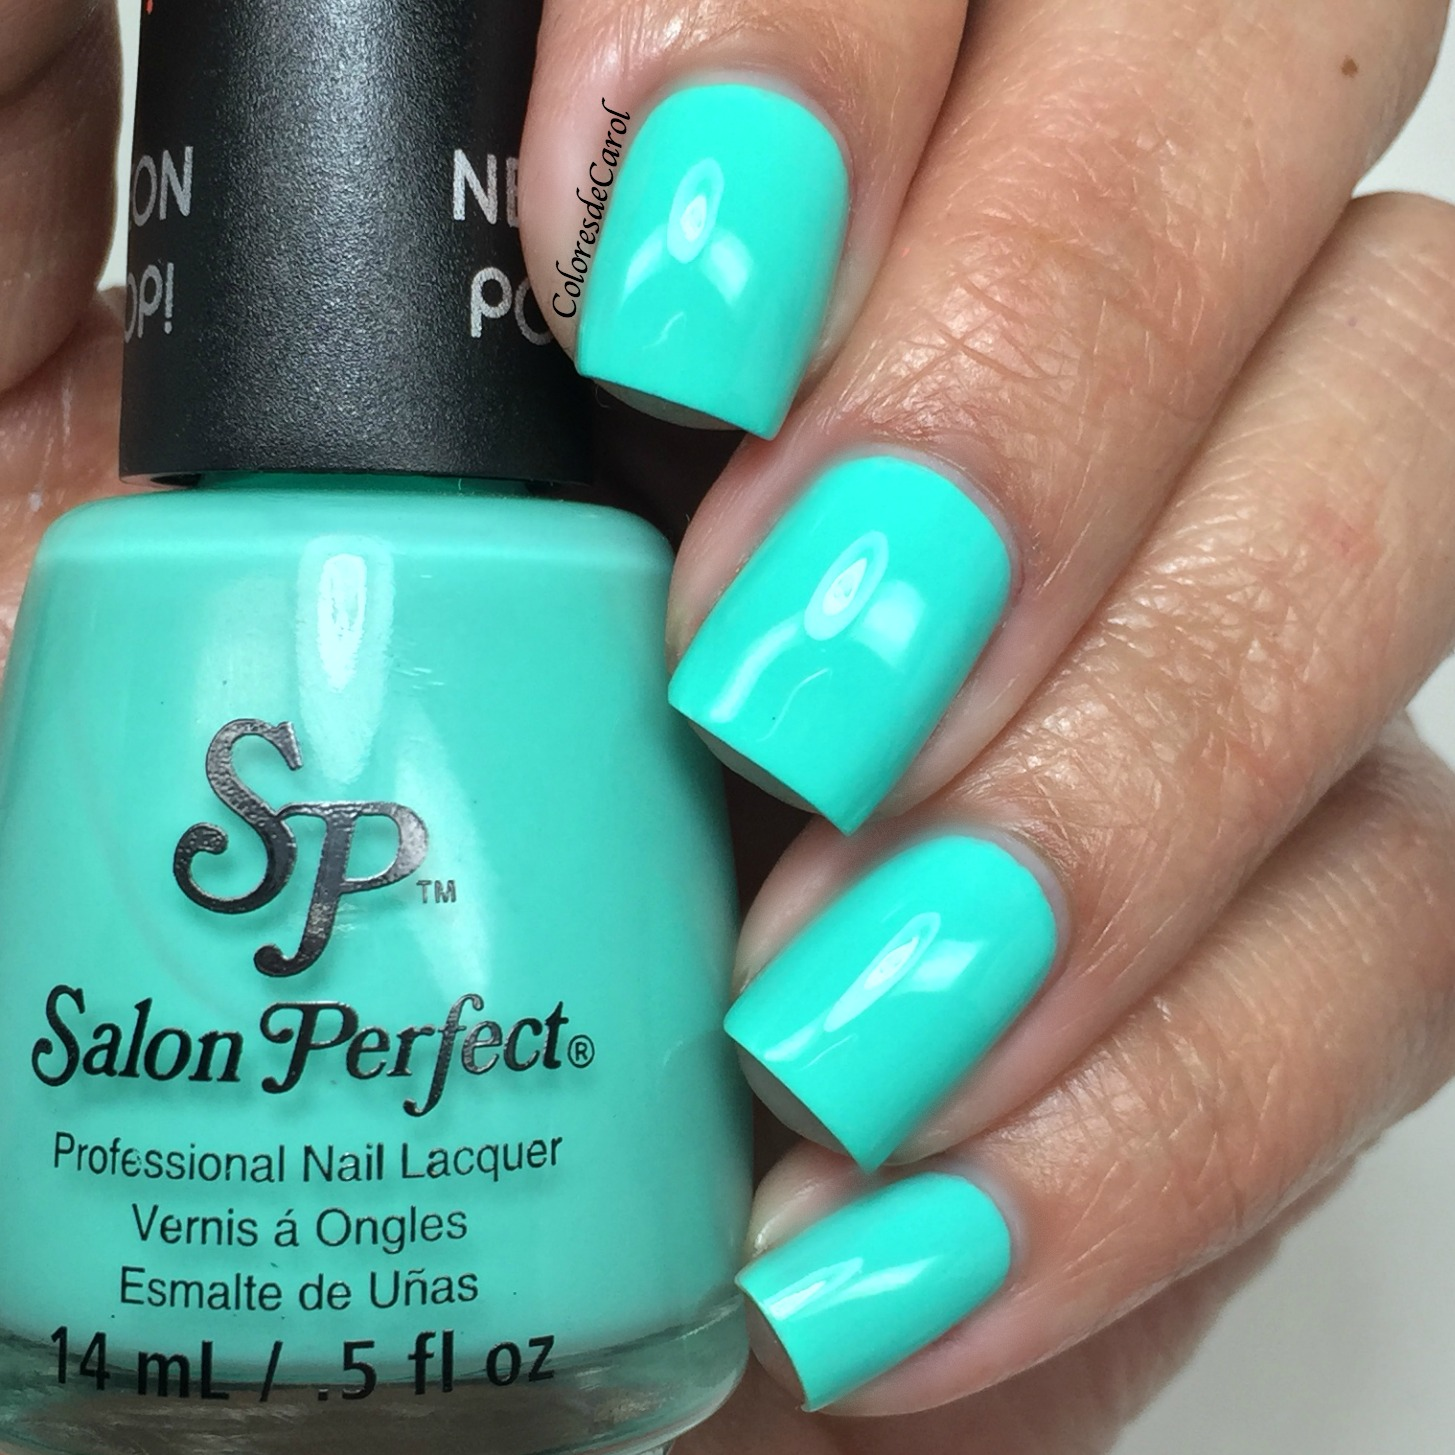 Neon Teal Nail Polish | Best Nail Designs 2018